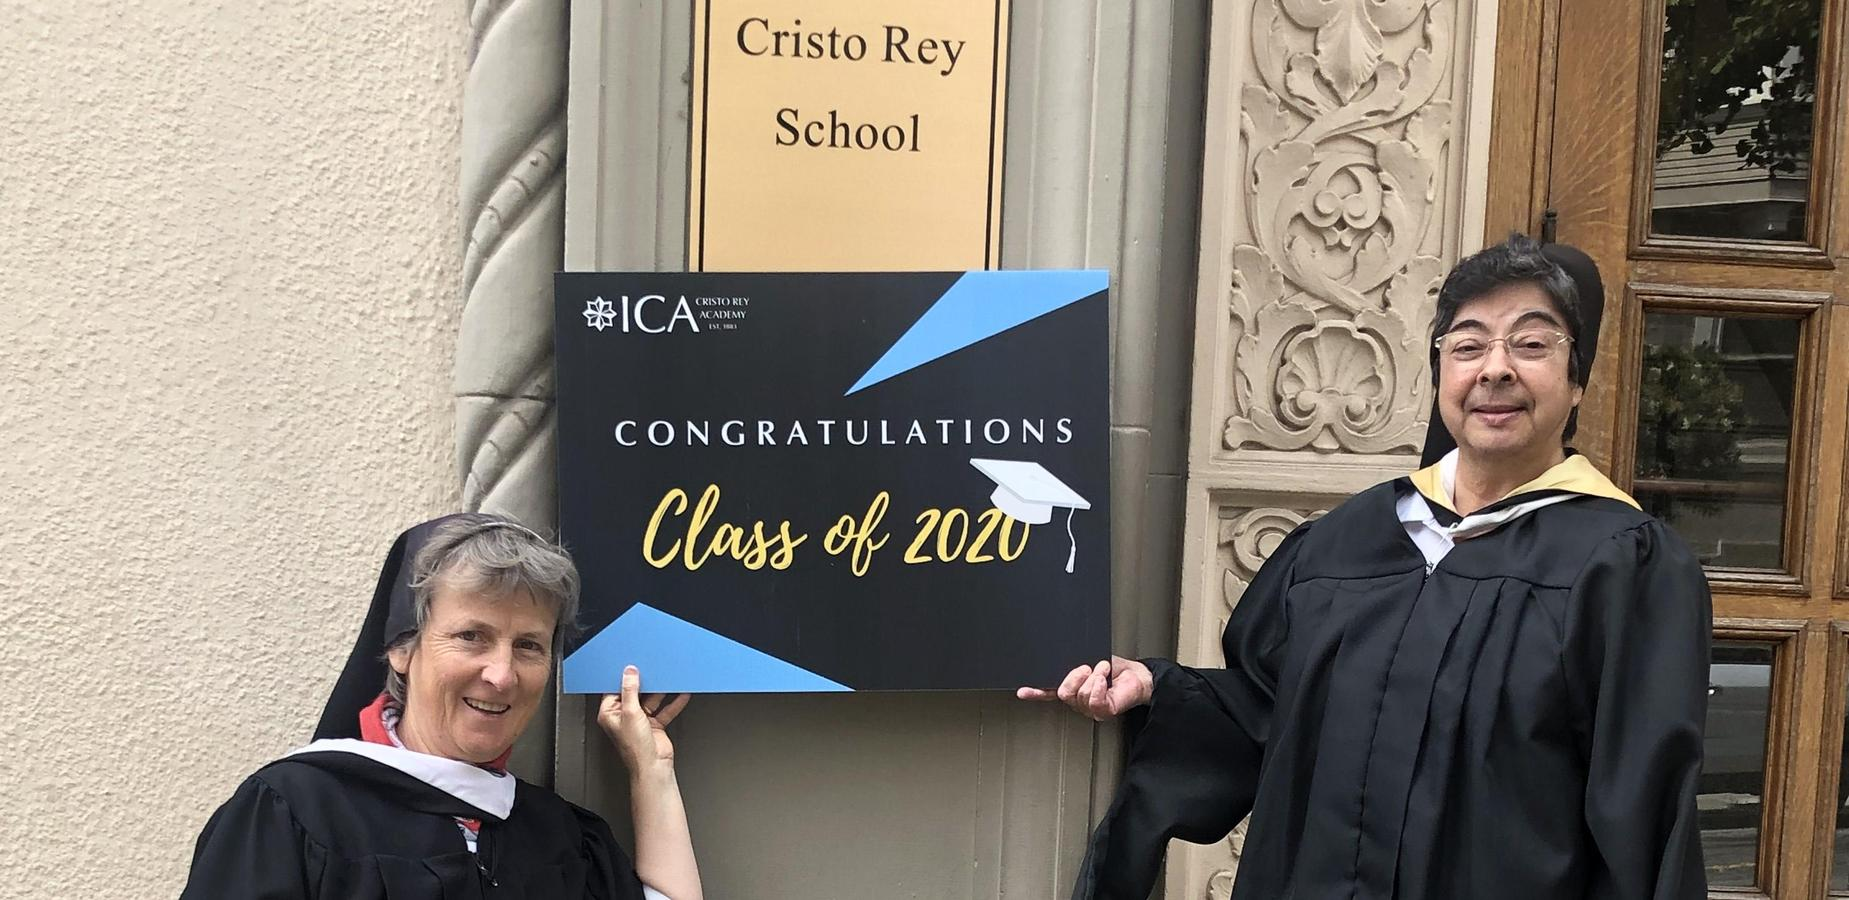 Sisters Lilly and Lisa Ann in from of ht eschool building holding a congratulatory sign for the class of 2020